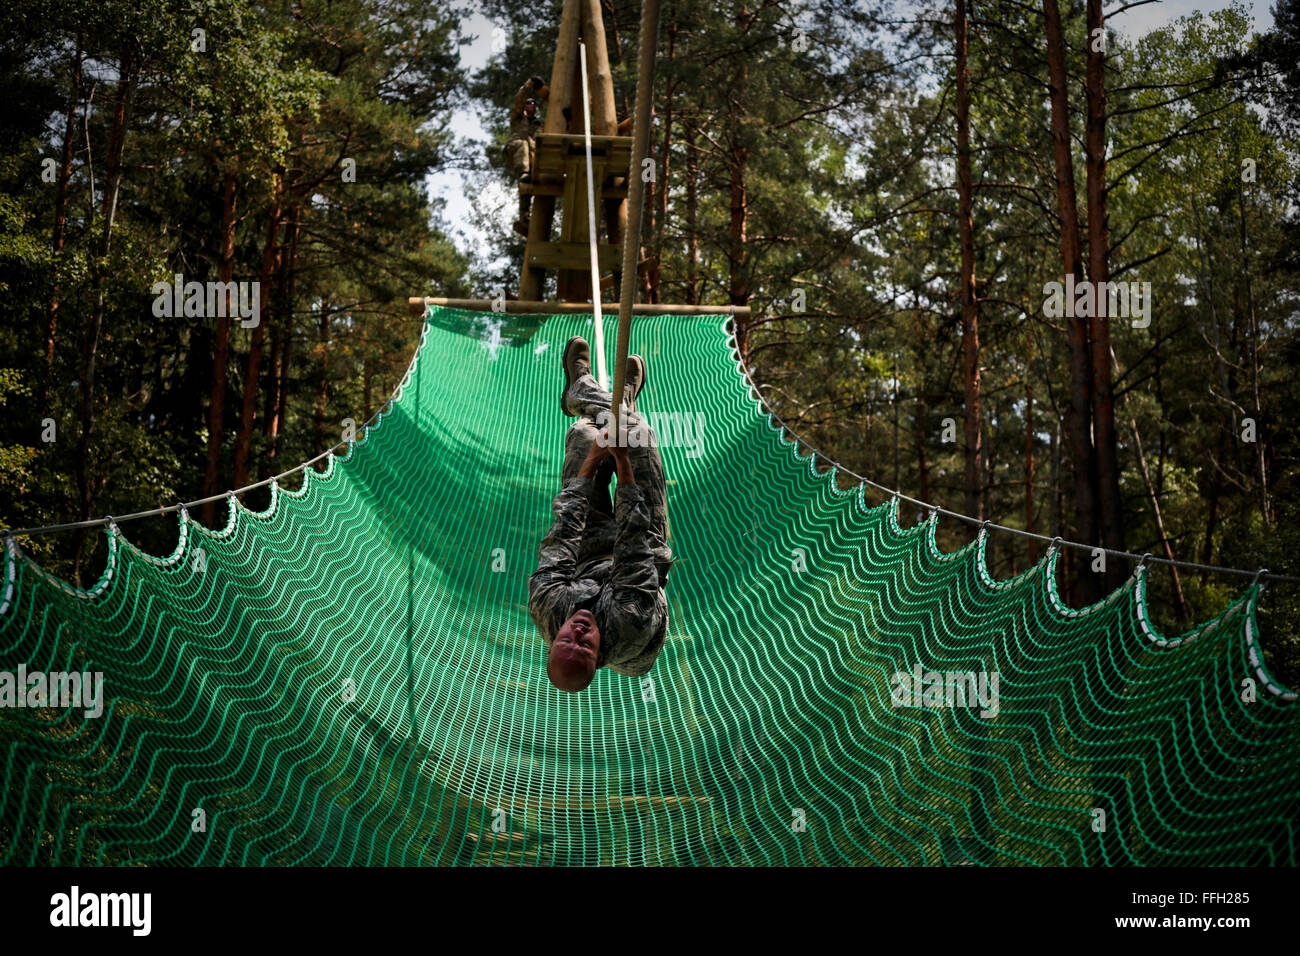 Staff Sgt. Stephen Moore climbs across the inverted rope challenge on an obstacle course at Grafenwoehr Training - Stock Image